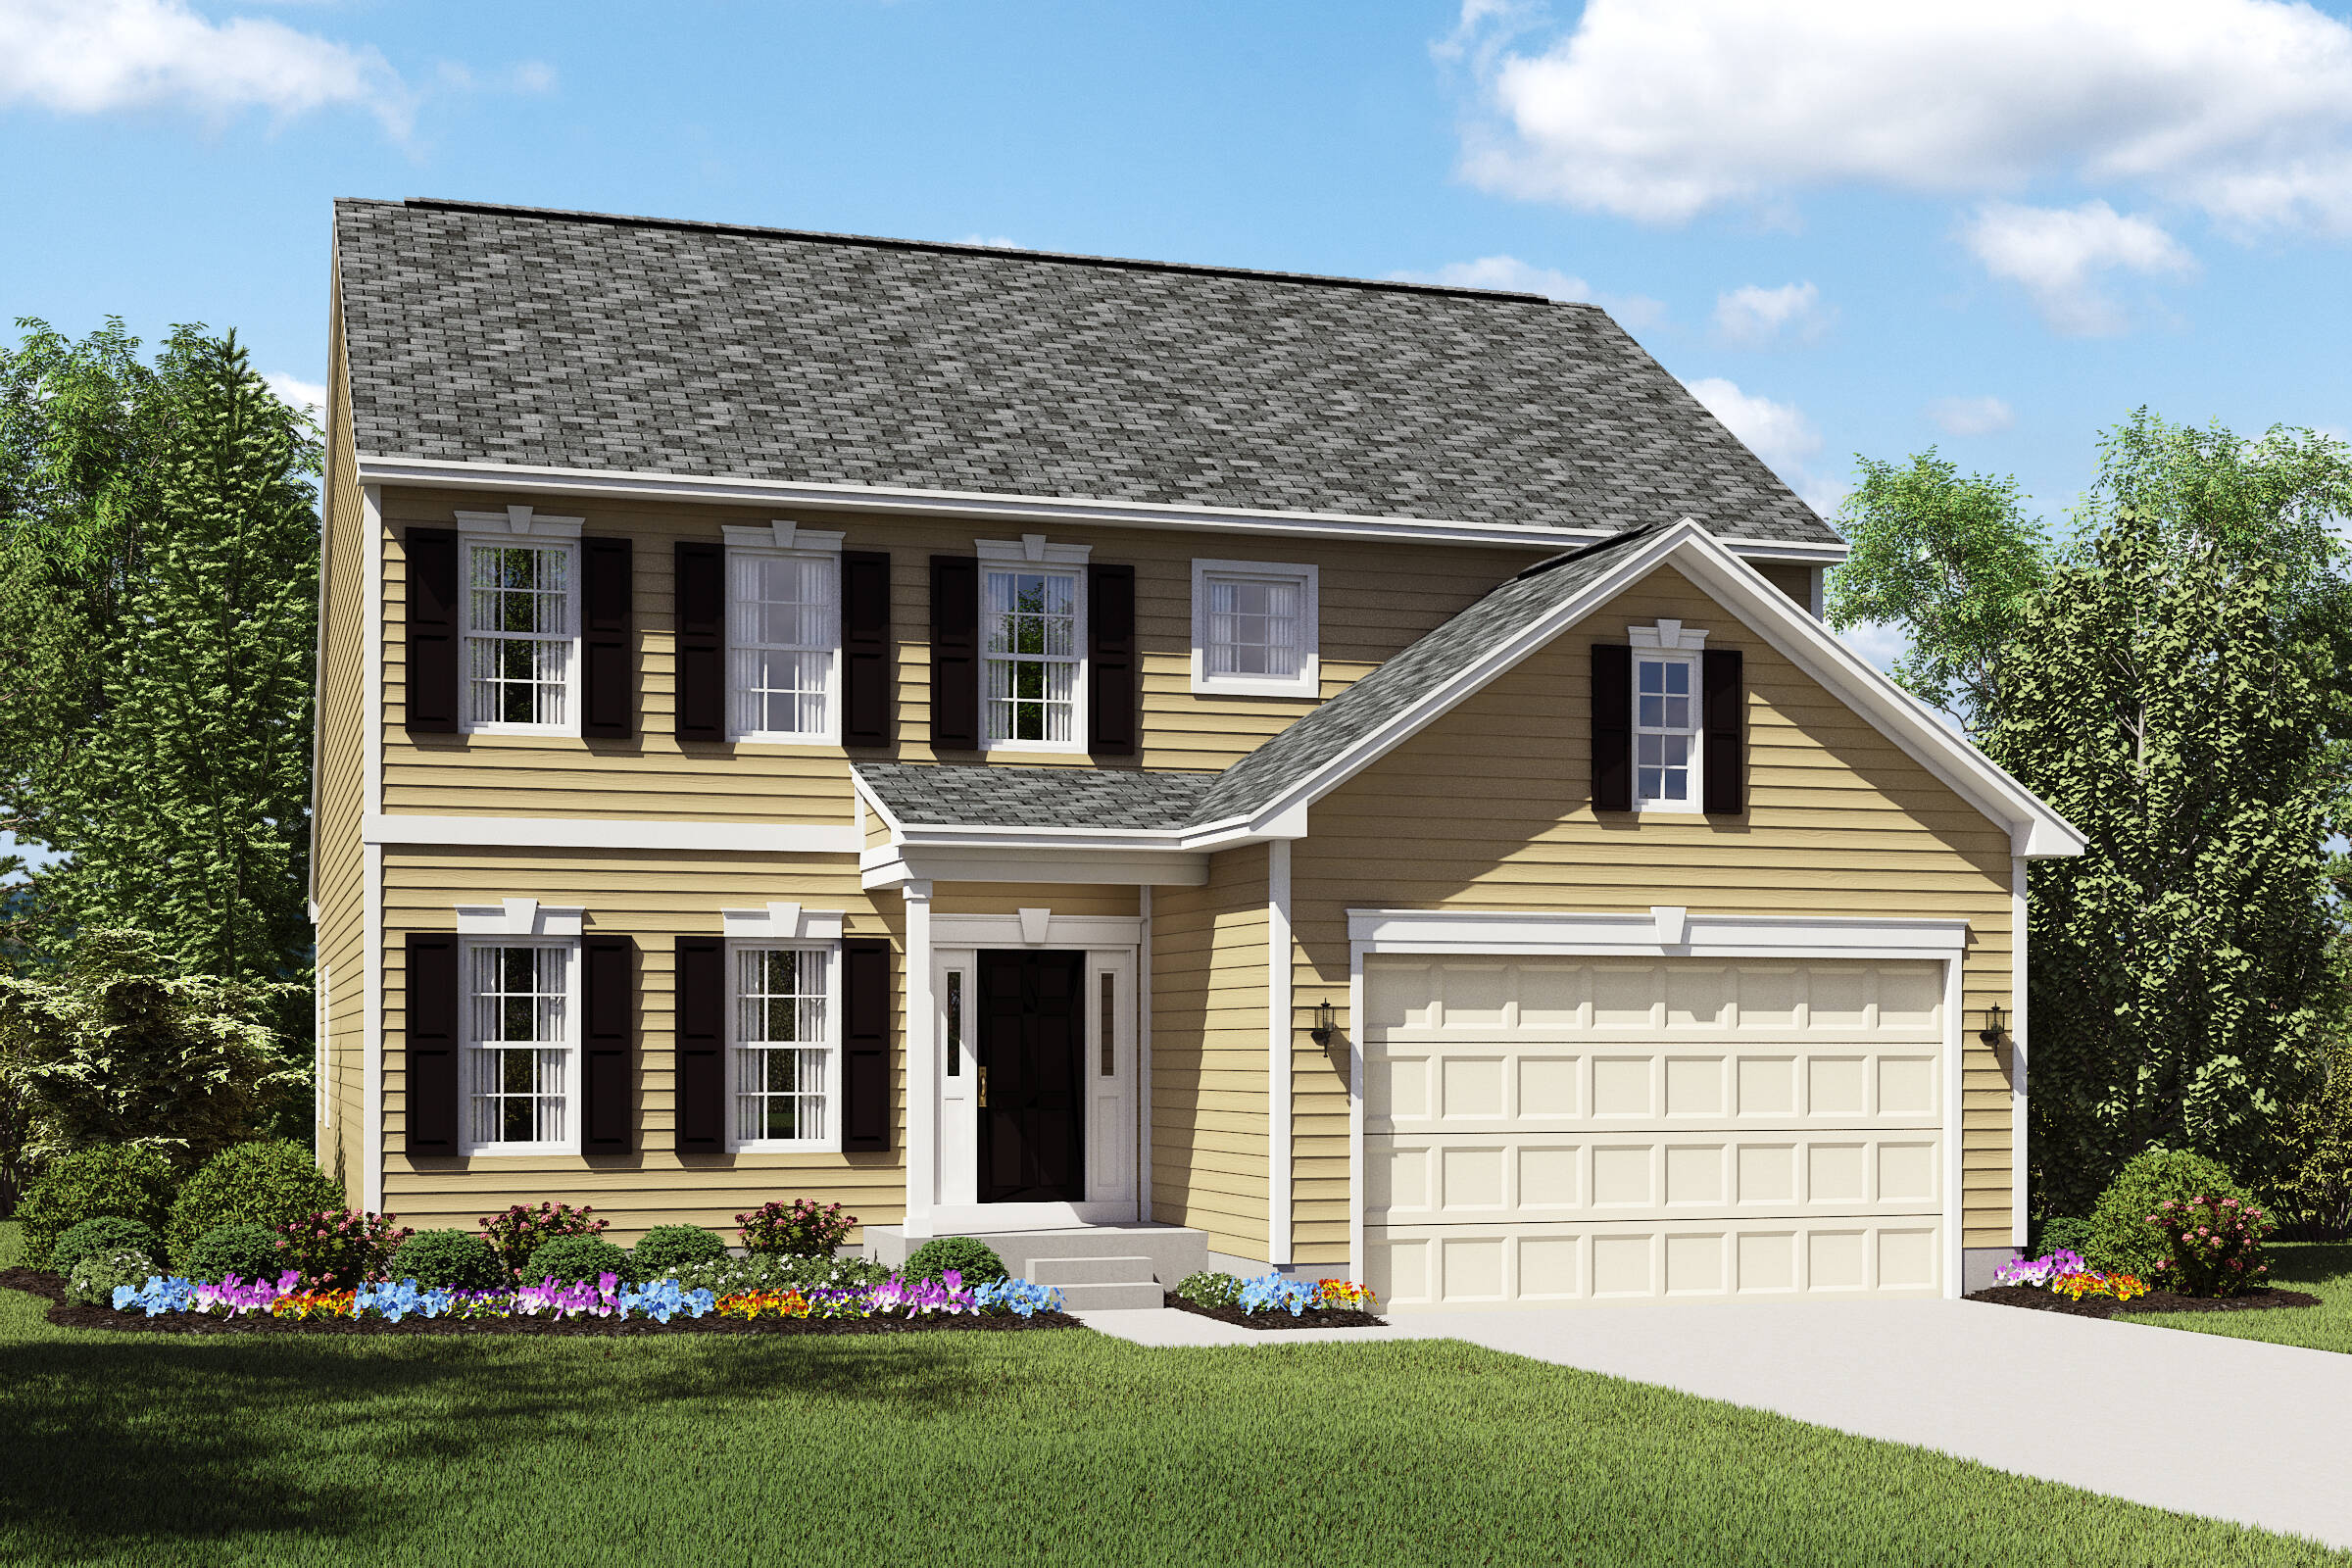 Oakridge-AS meadow lakes new homes k hovnanian homes